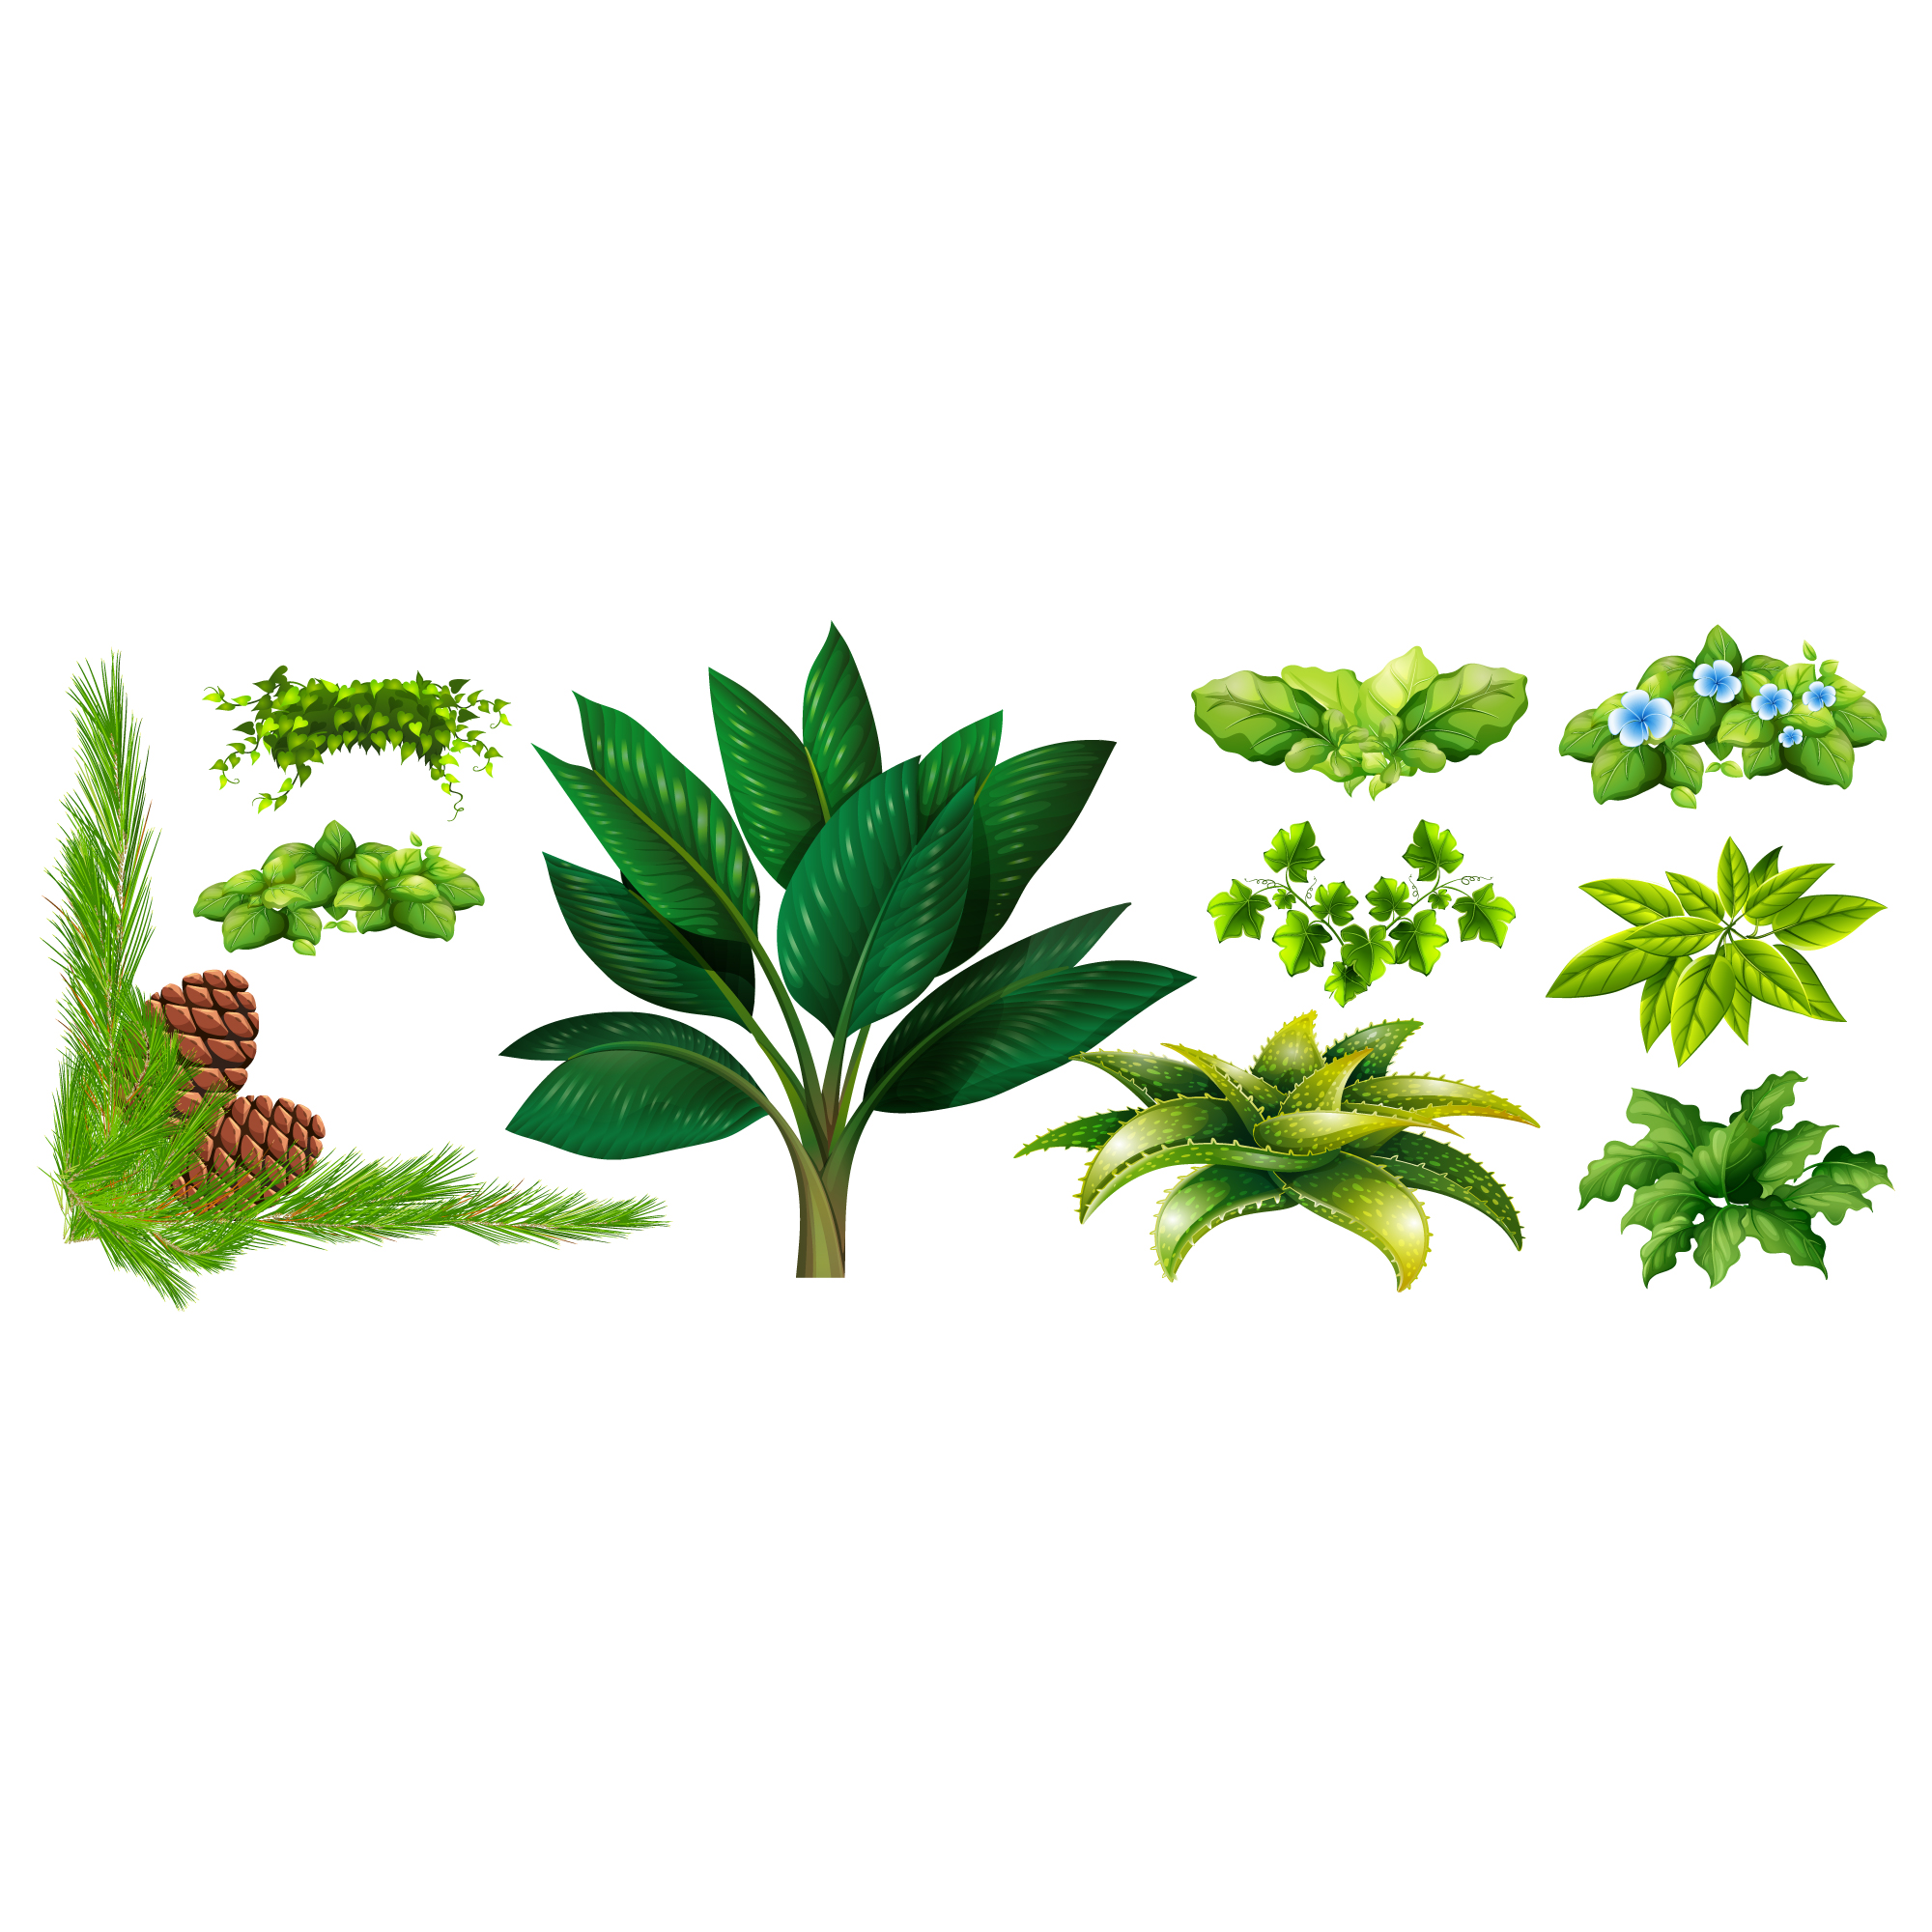 Green leaves collection